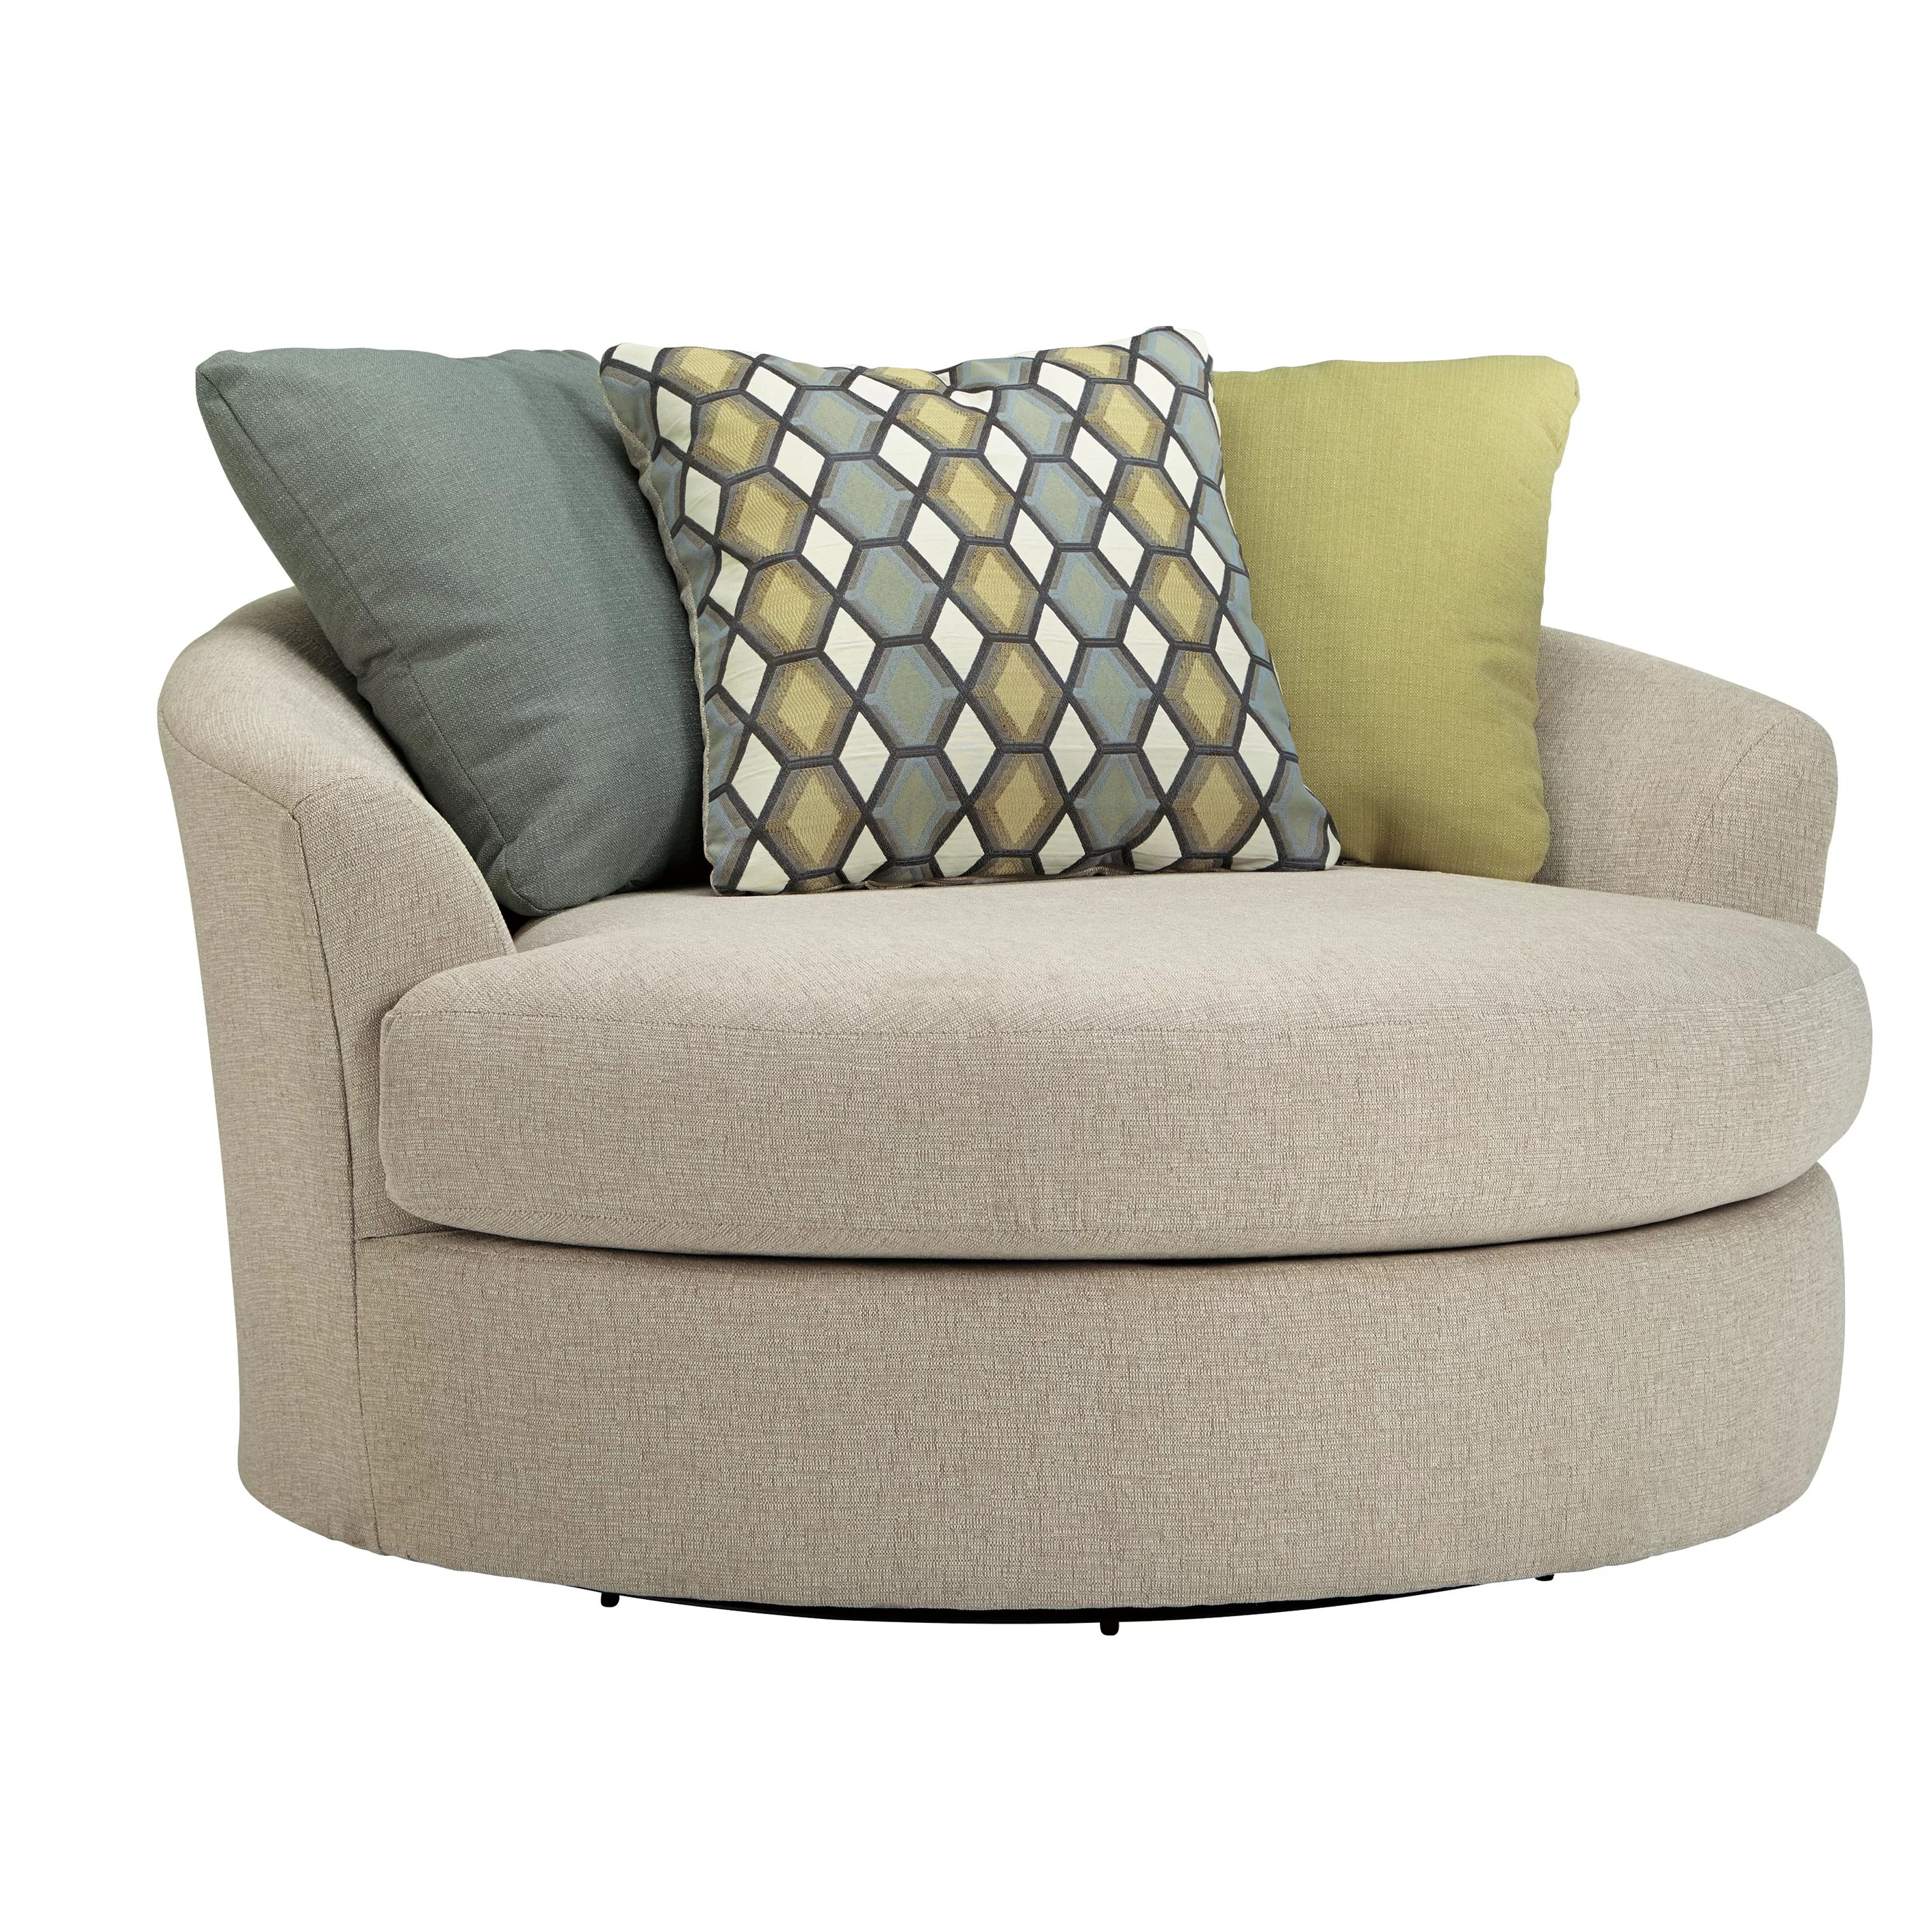 Barrell Chair Latitude Run Bradfield Oversized Swivel Barrel Chair